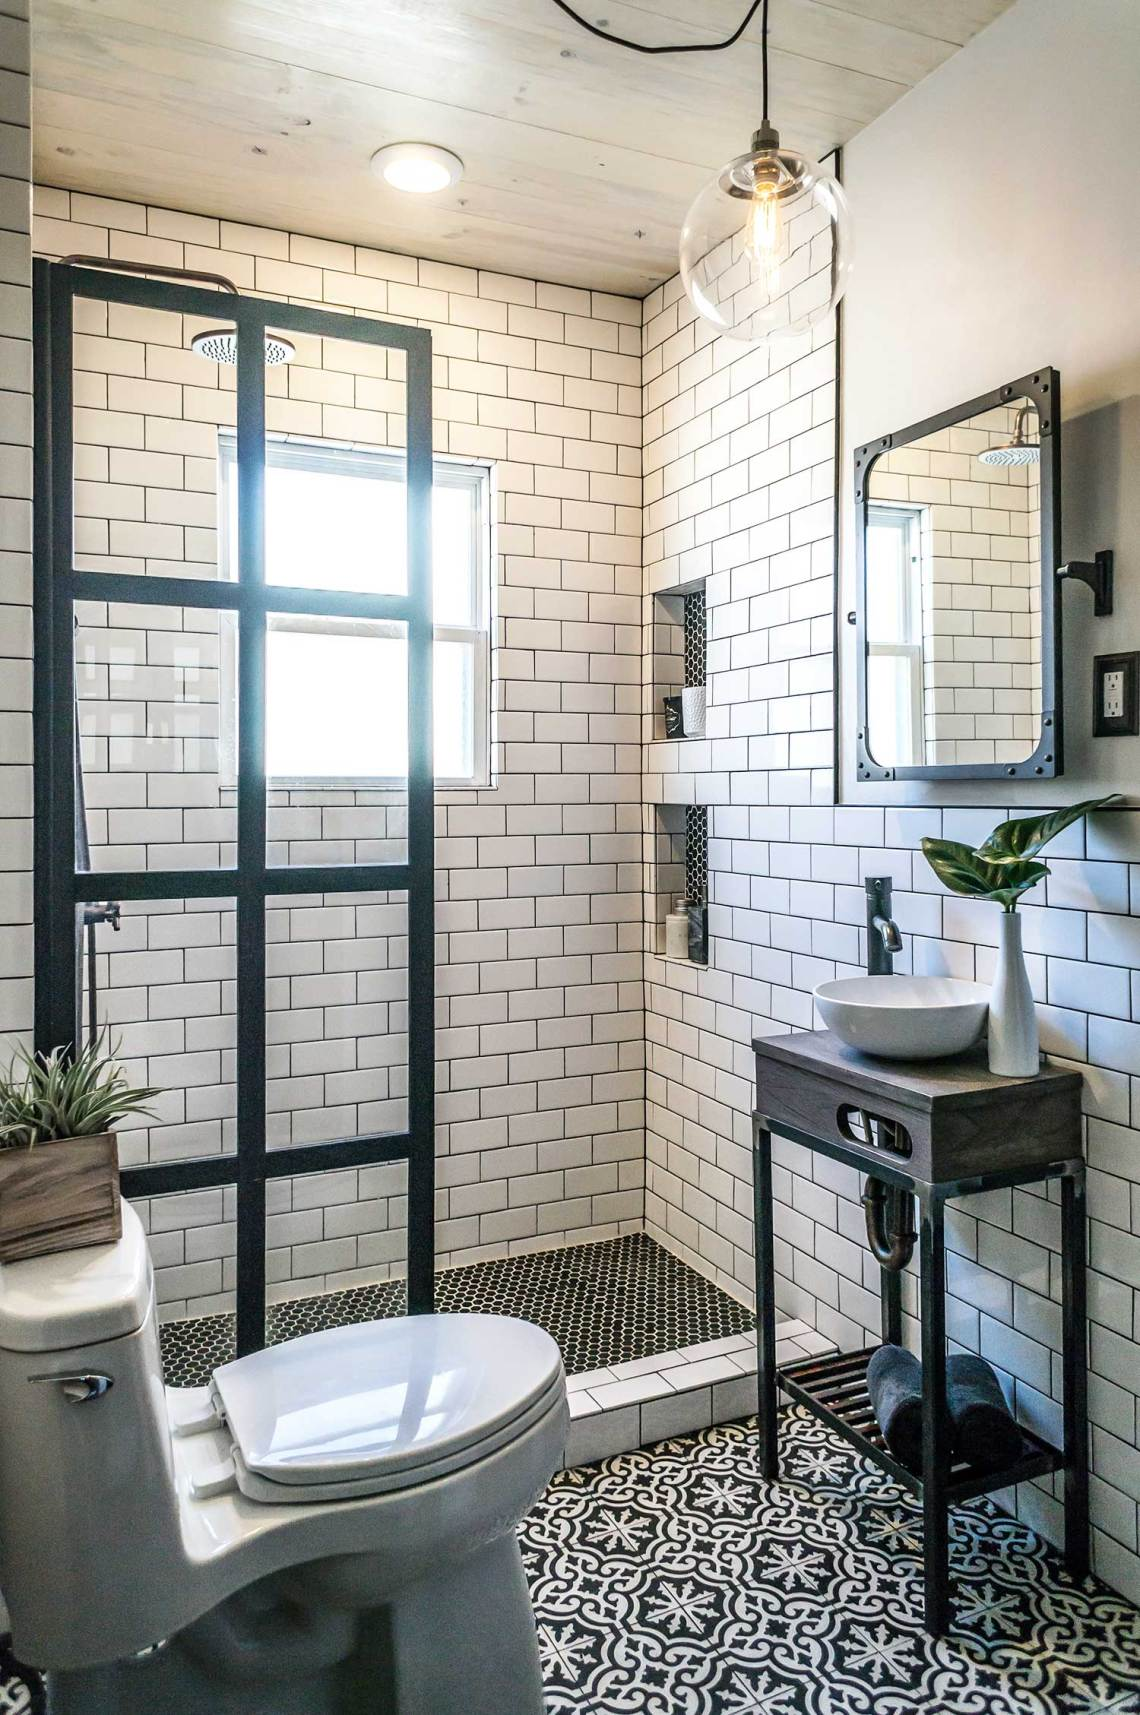 31 Small Bathroom Design Ideas To Get Inspired